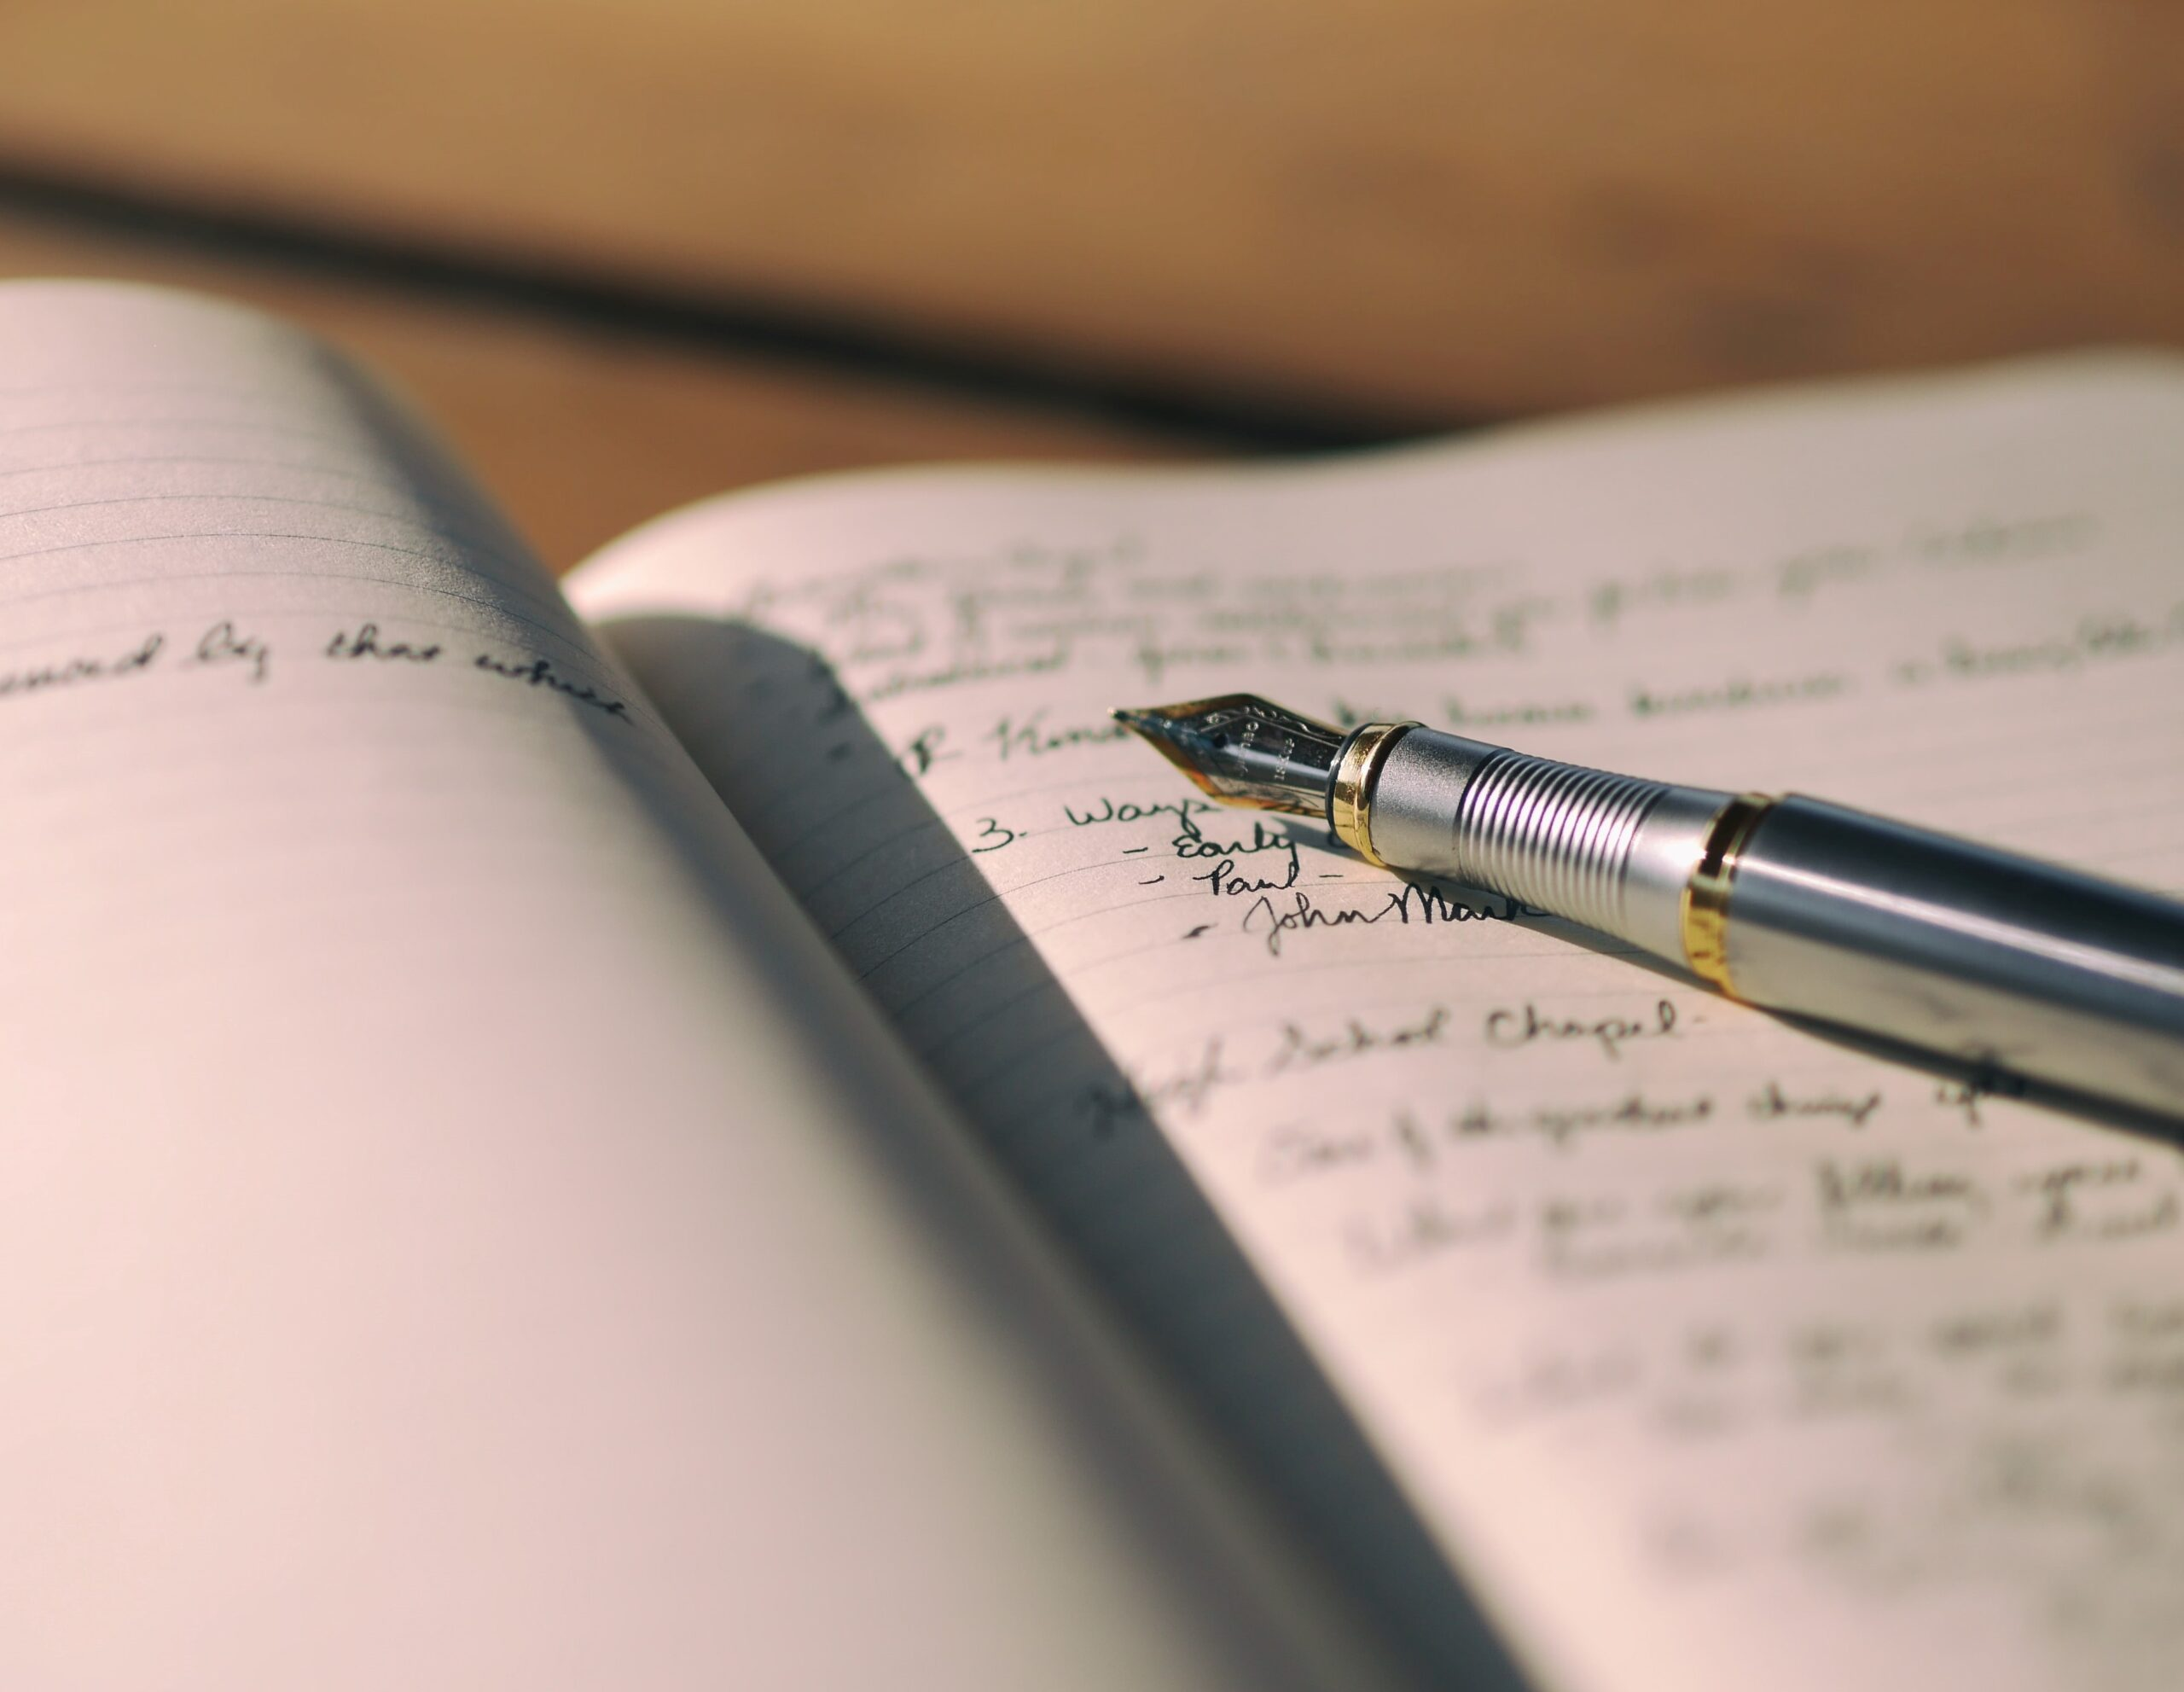 a pen is sitting on top of an open journal